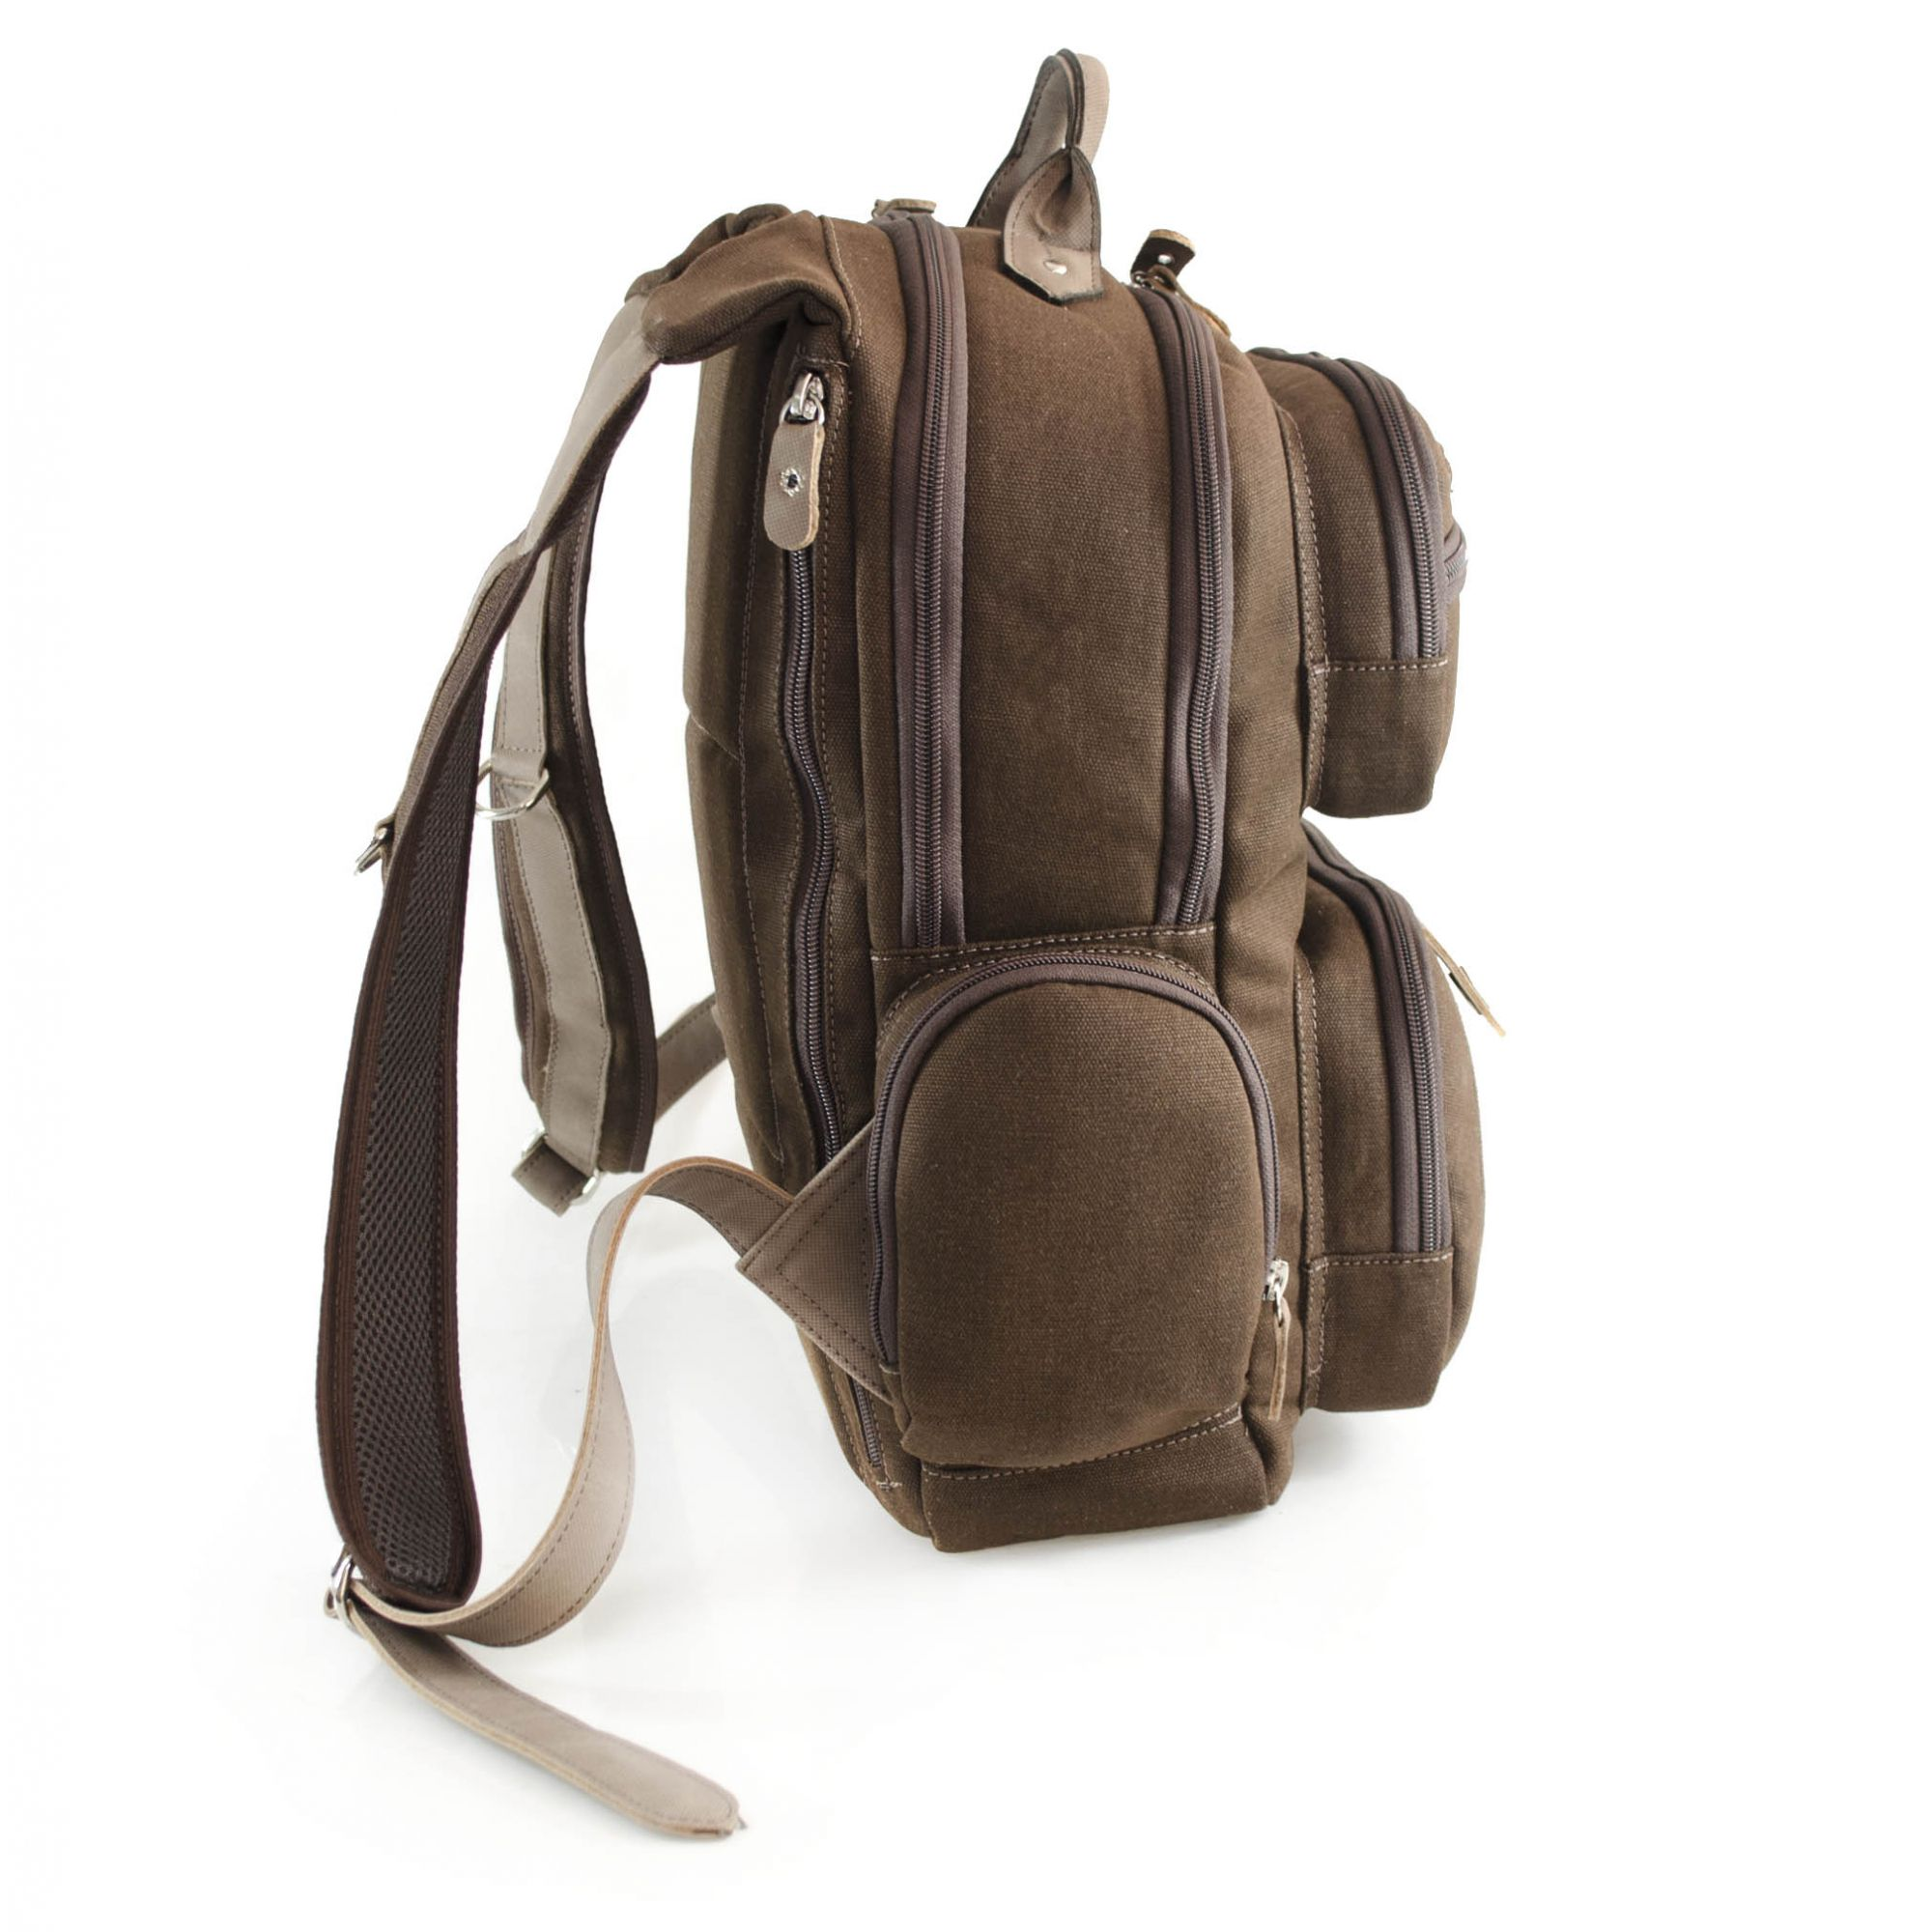 Mochila Vegano Shoes Eco Cravina Bistre